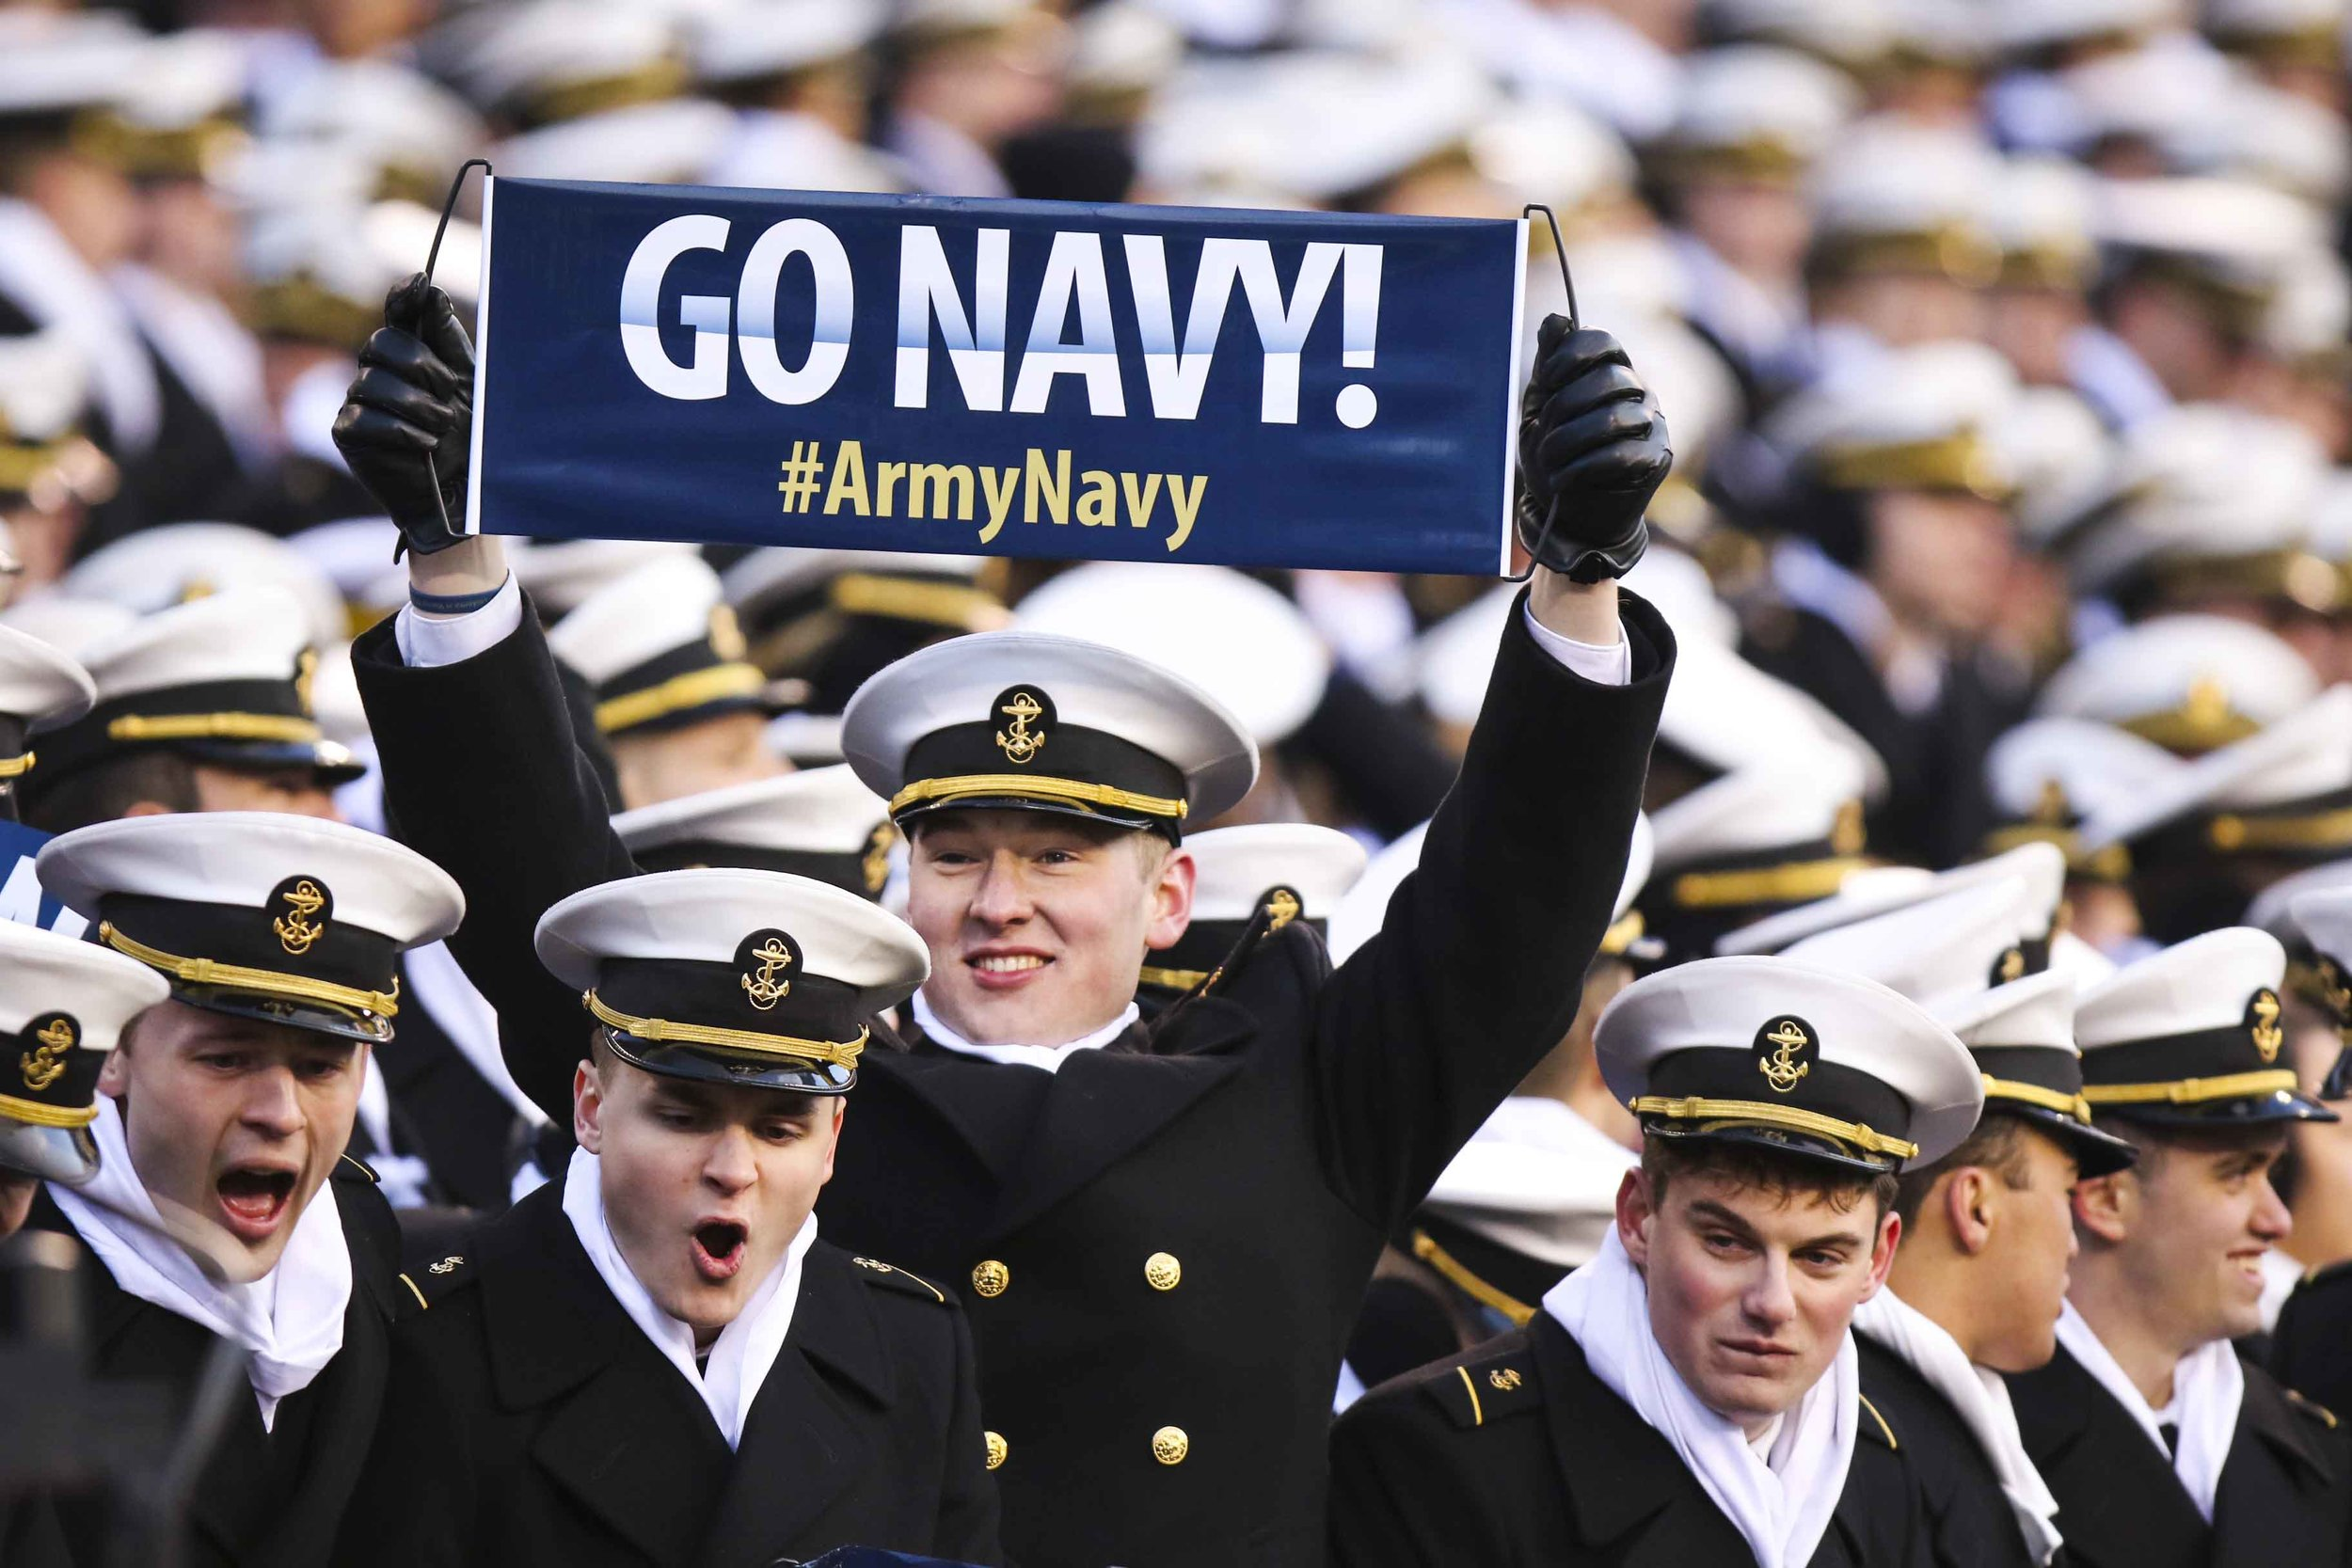 GoNavy-Small (1 of 1).jpg